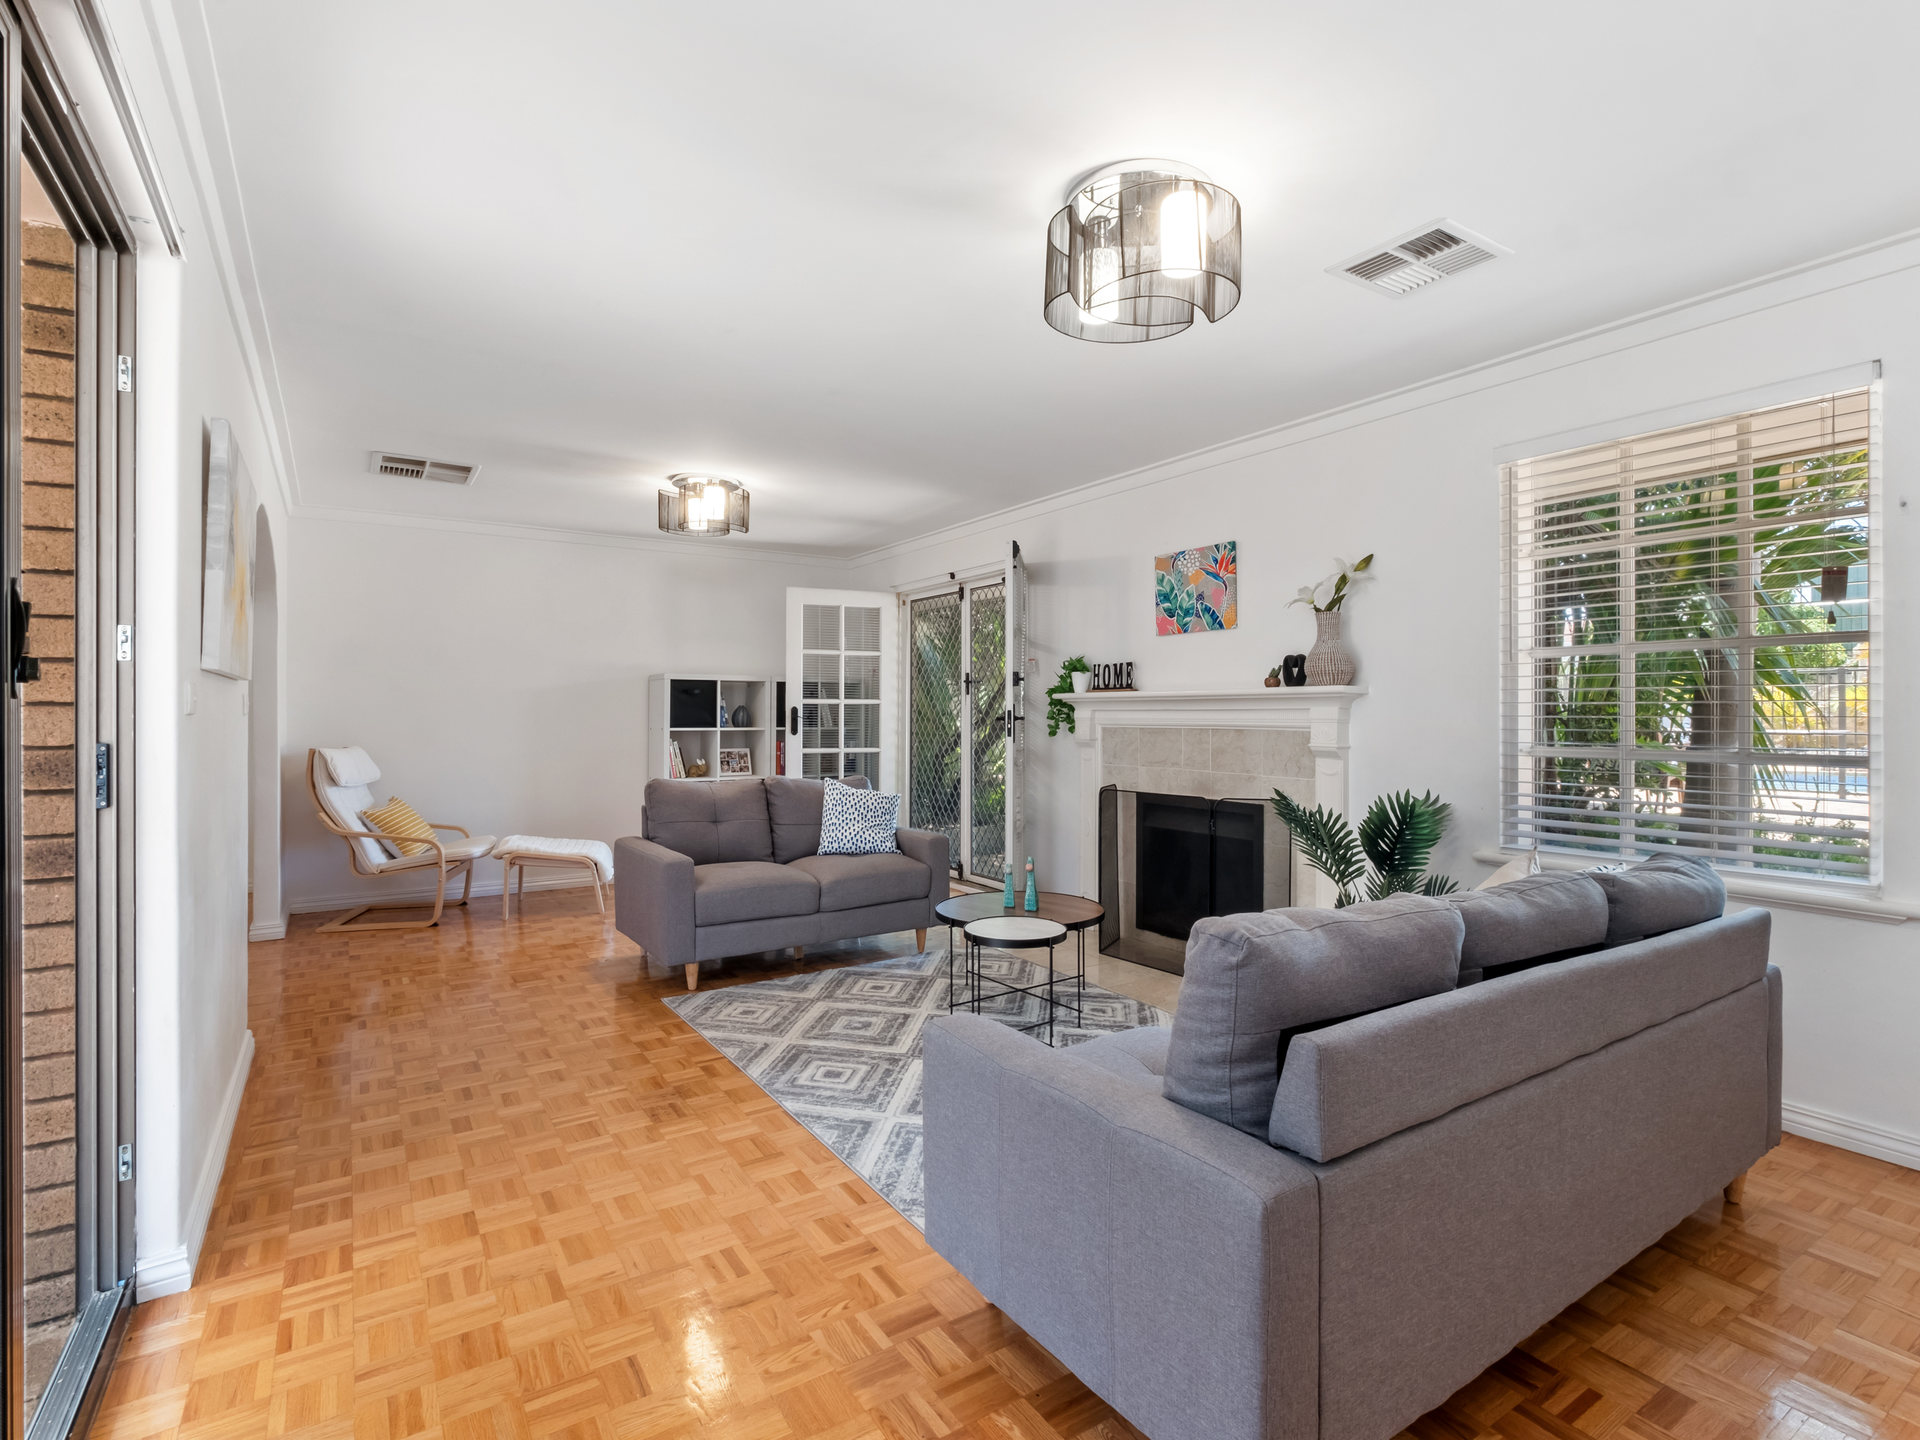 Property for sale in MAIDA VALE